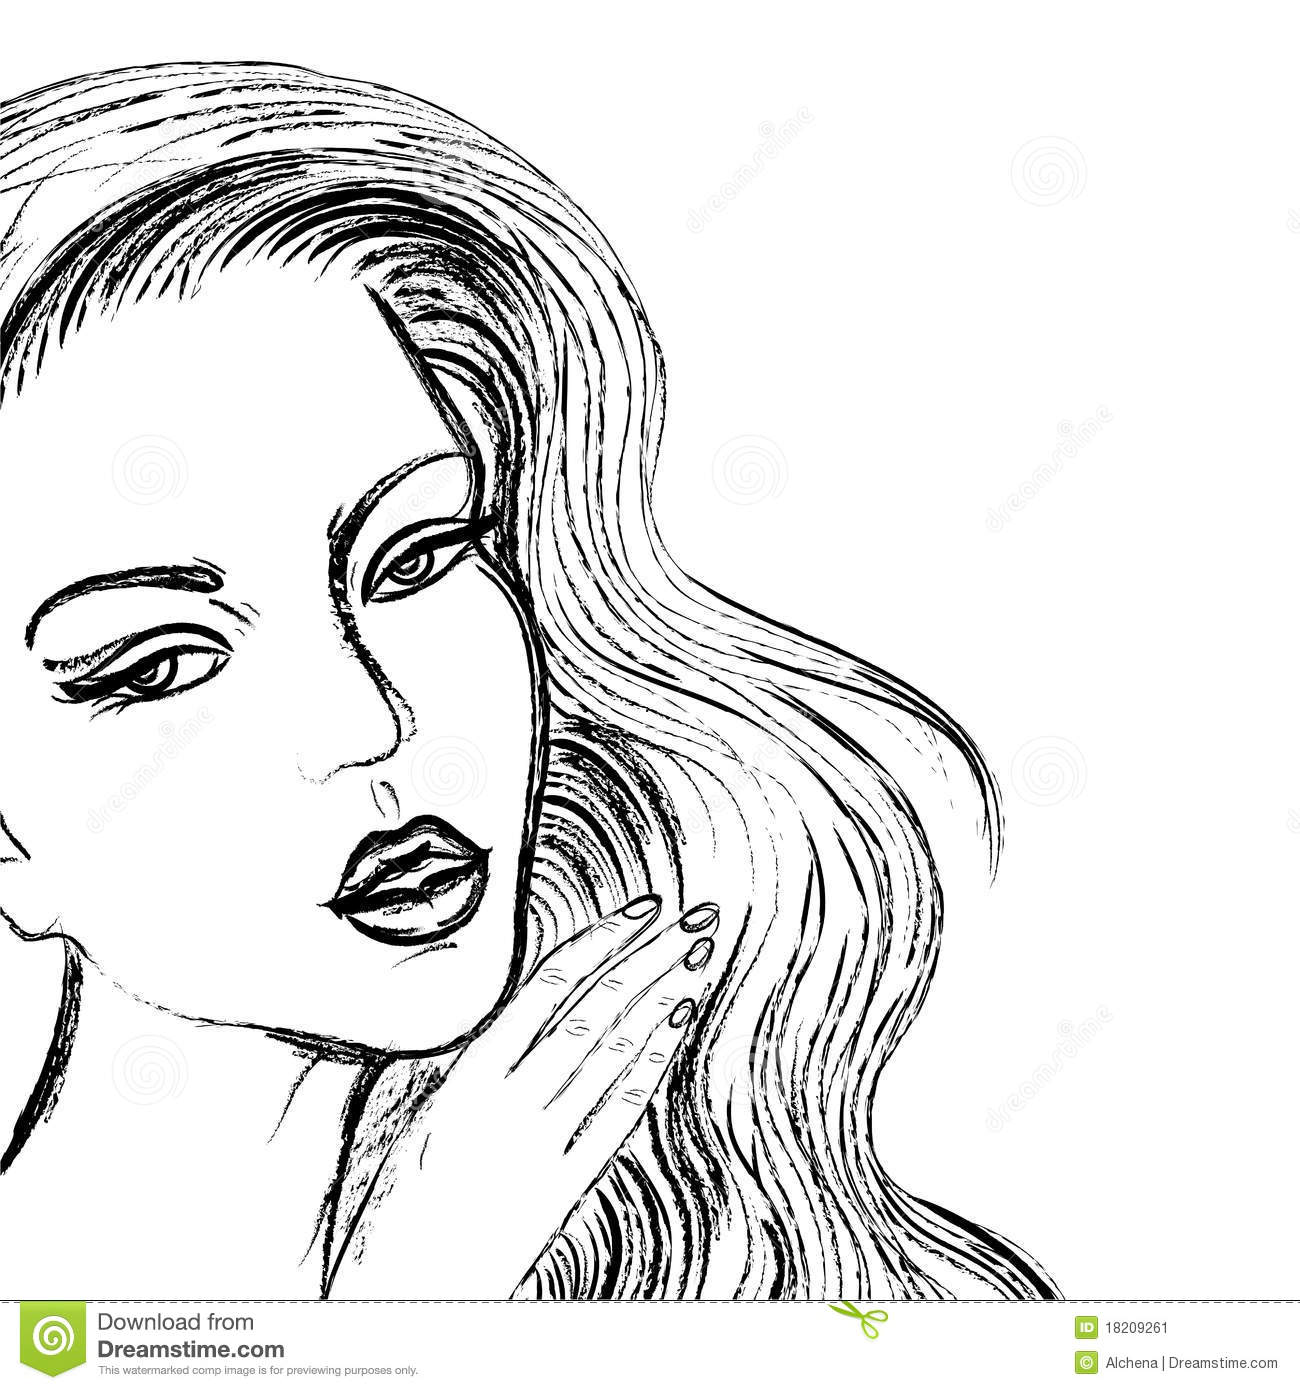 Sketch of beautiful women face like drawn by coal